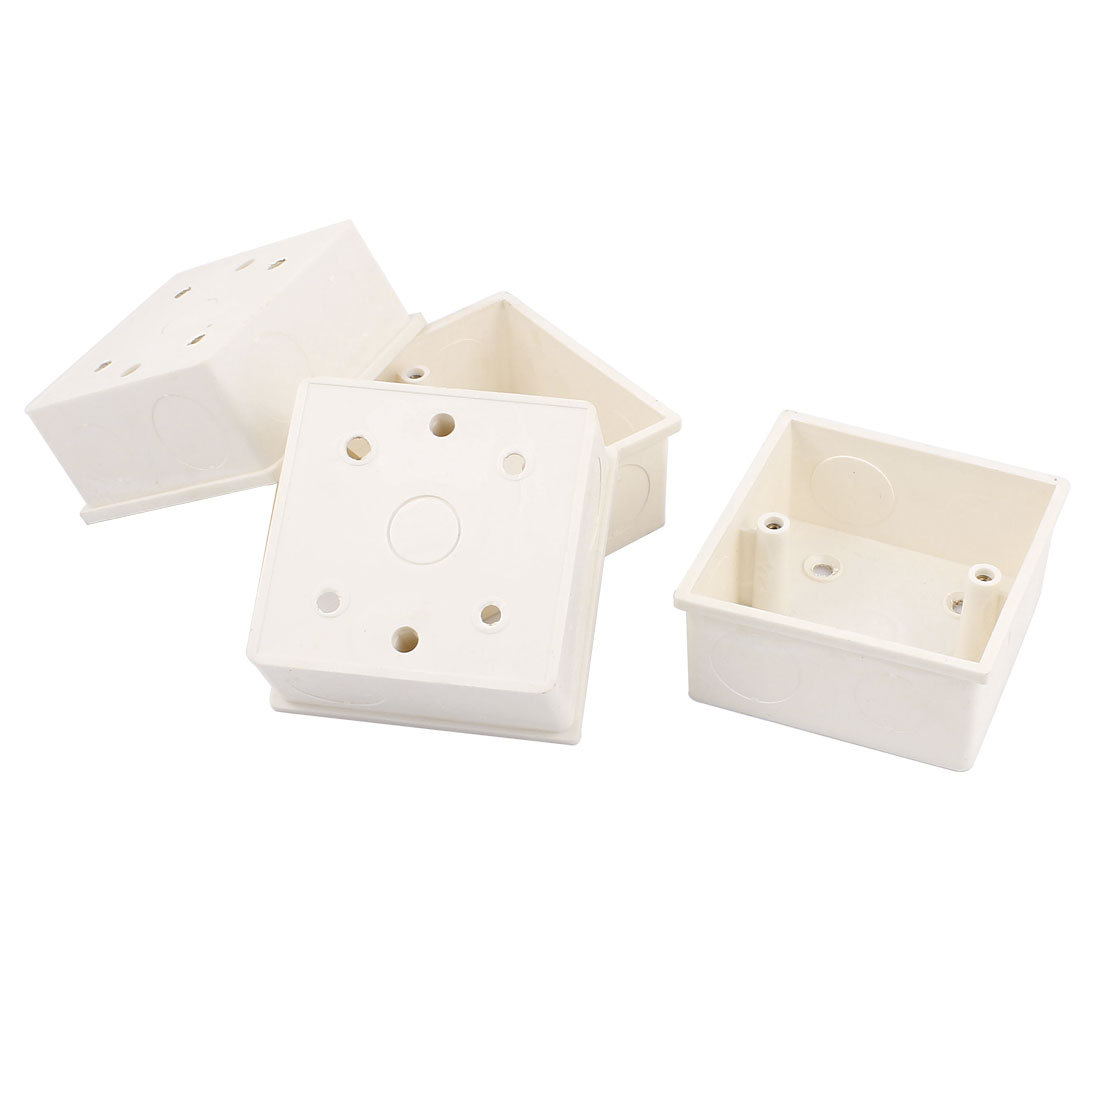 4pcs 85mmx85mmx40mm White PVC Cable Connect Flush Mount Back Box for Wall Socket